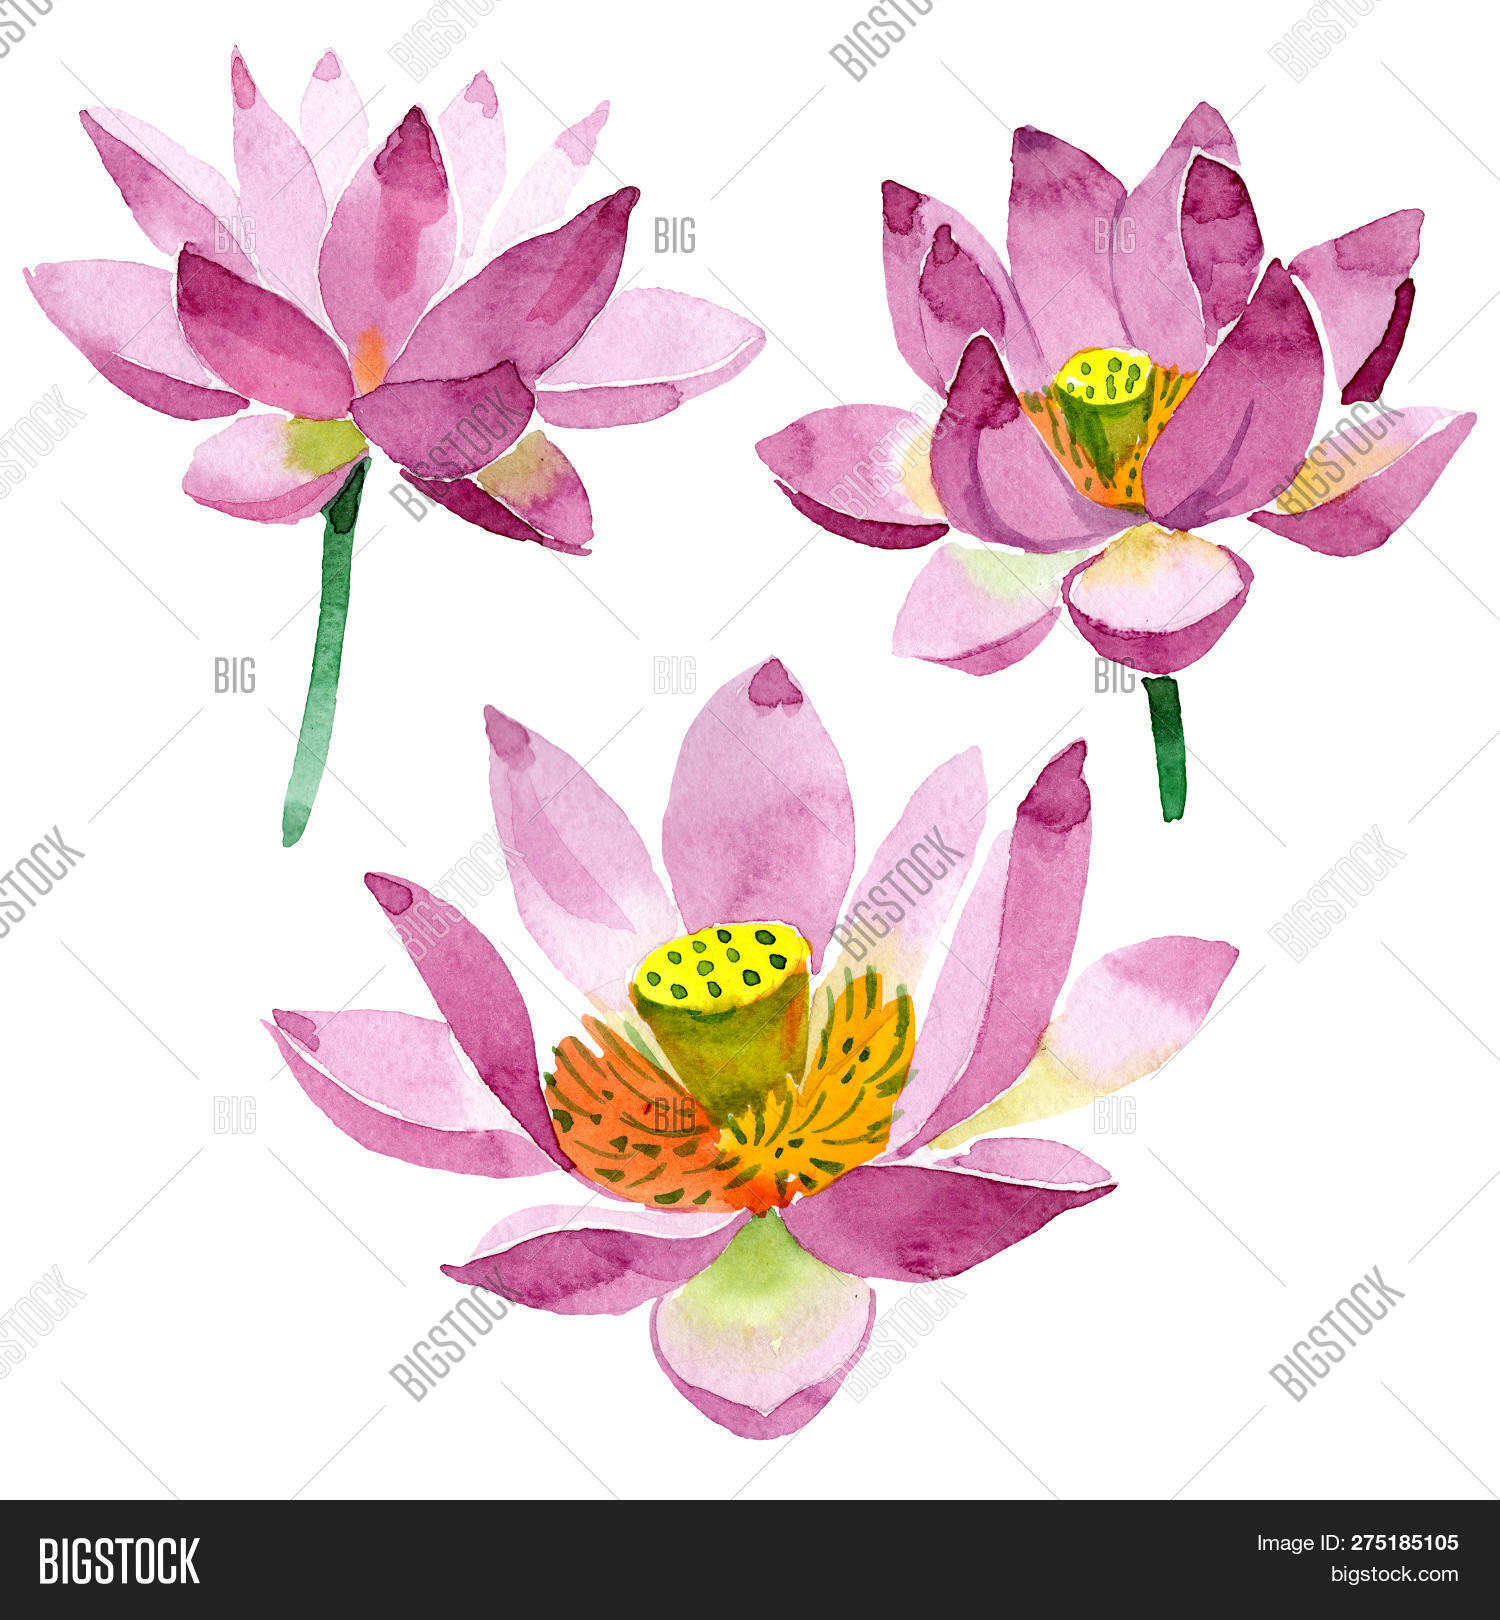 Purple Lotus Floral Image Photo Free Trial Bigstock